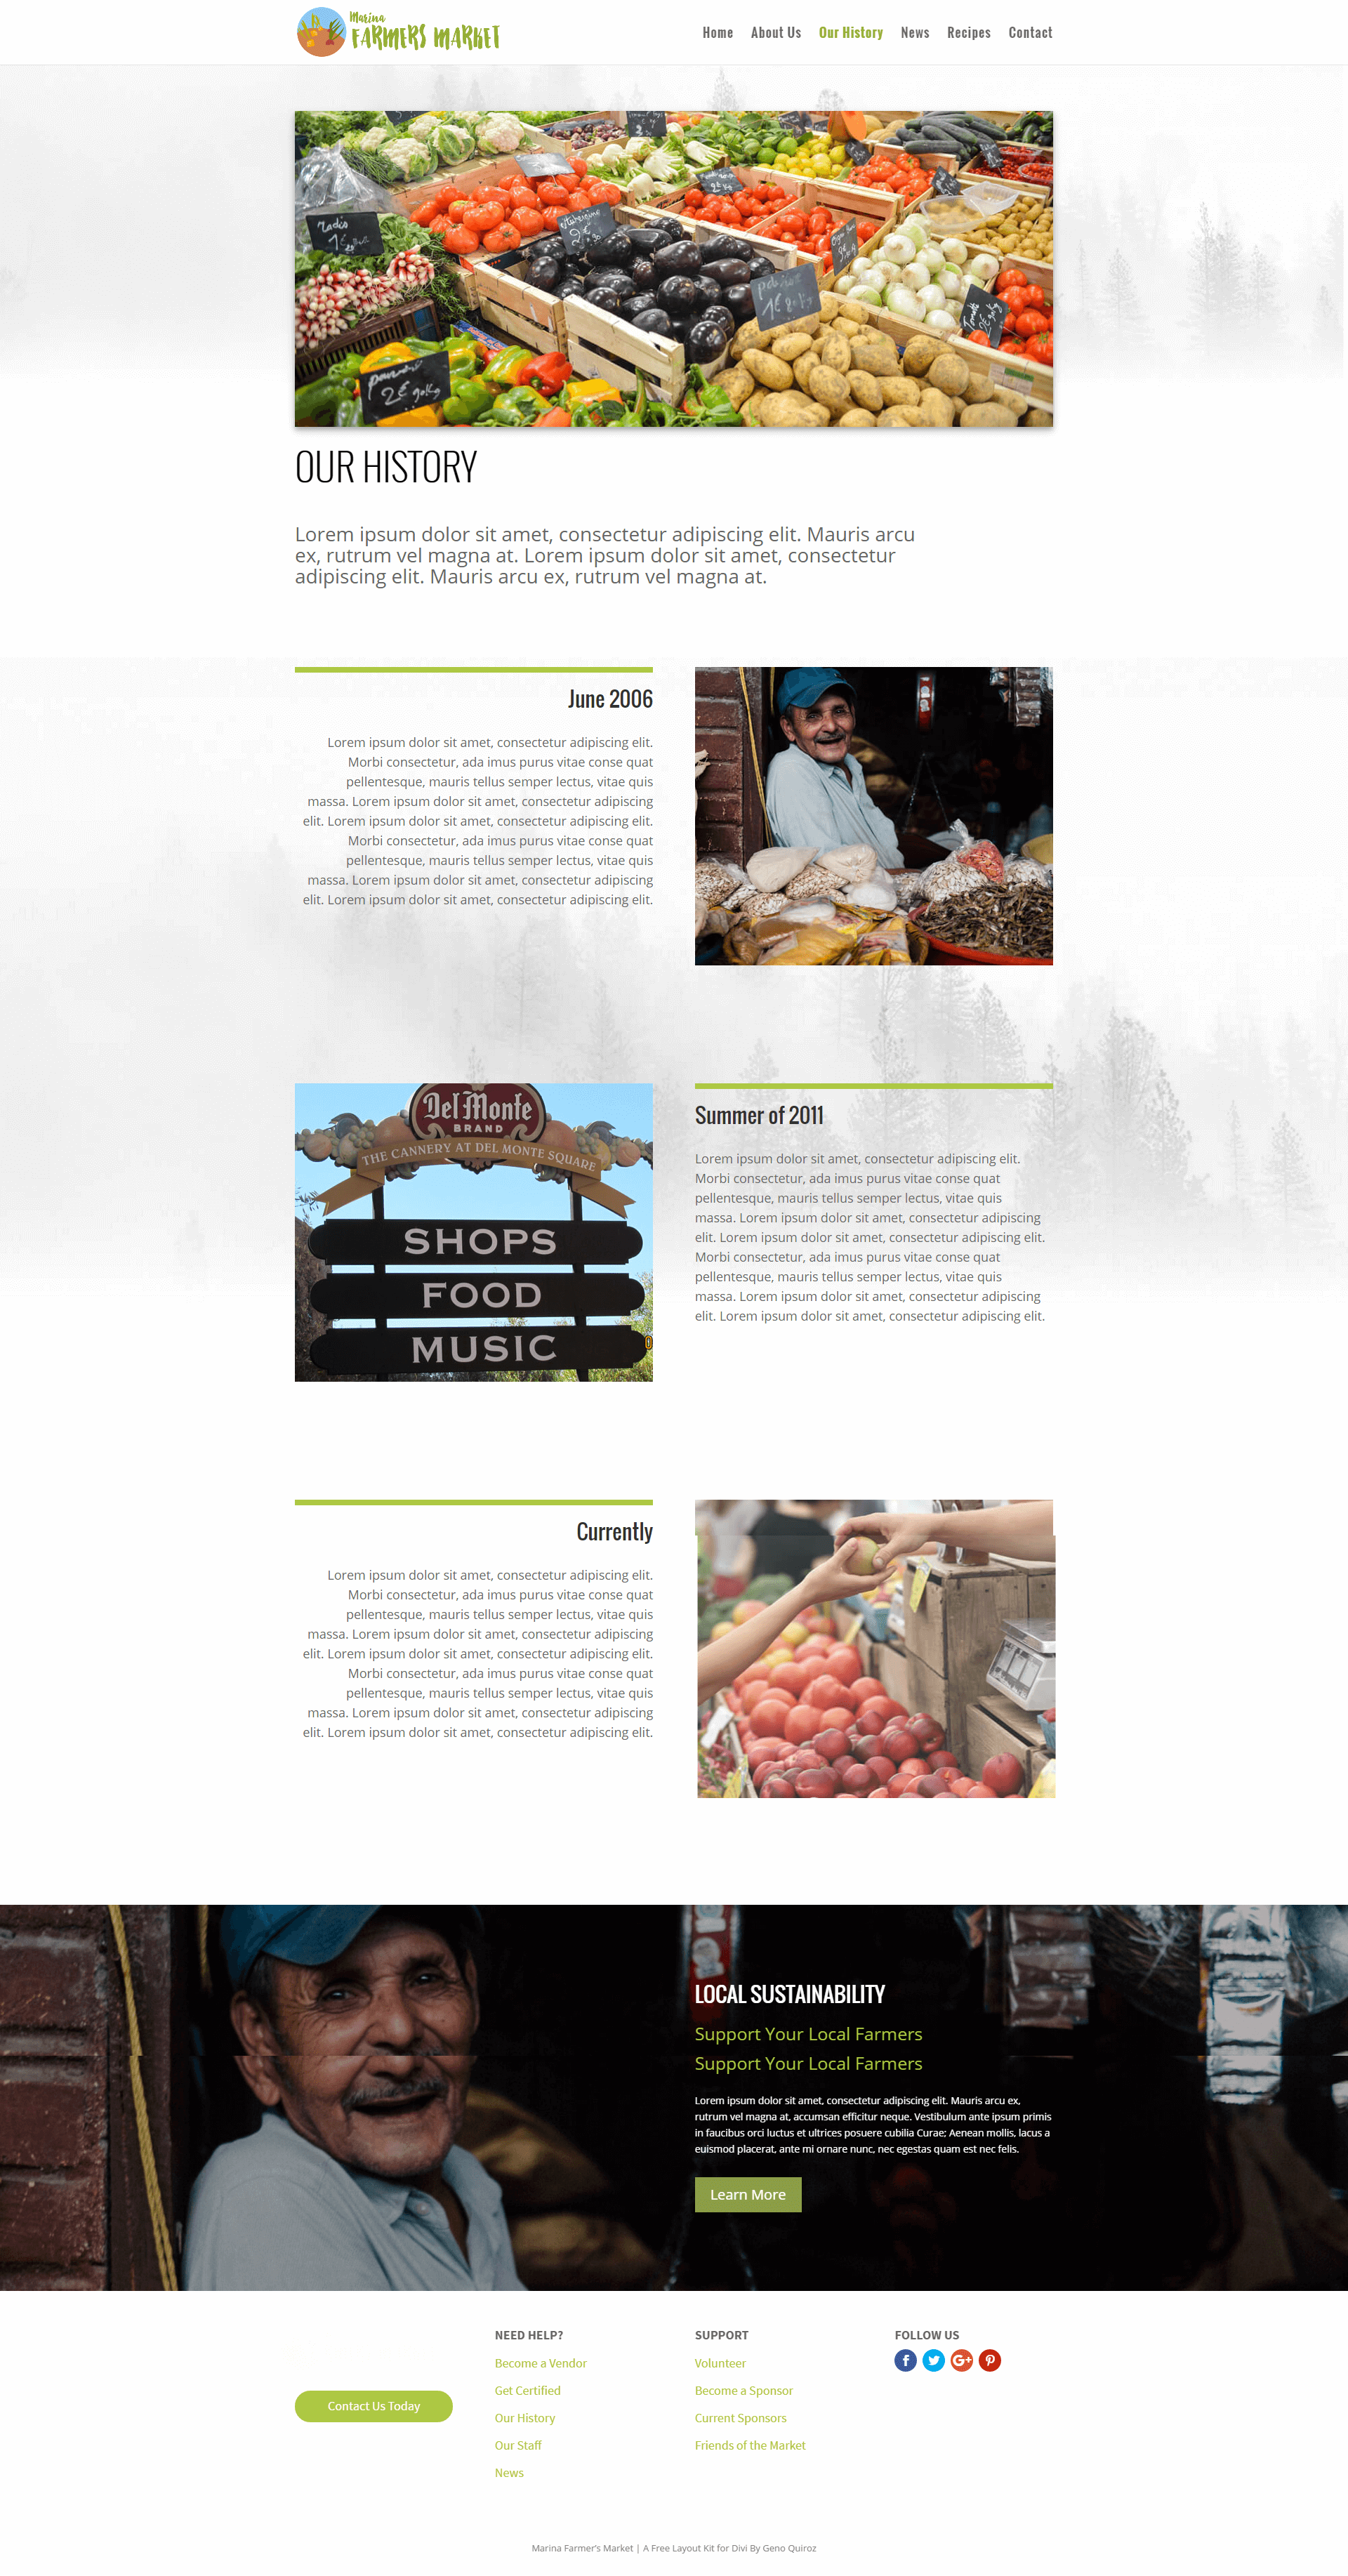 Our History Page